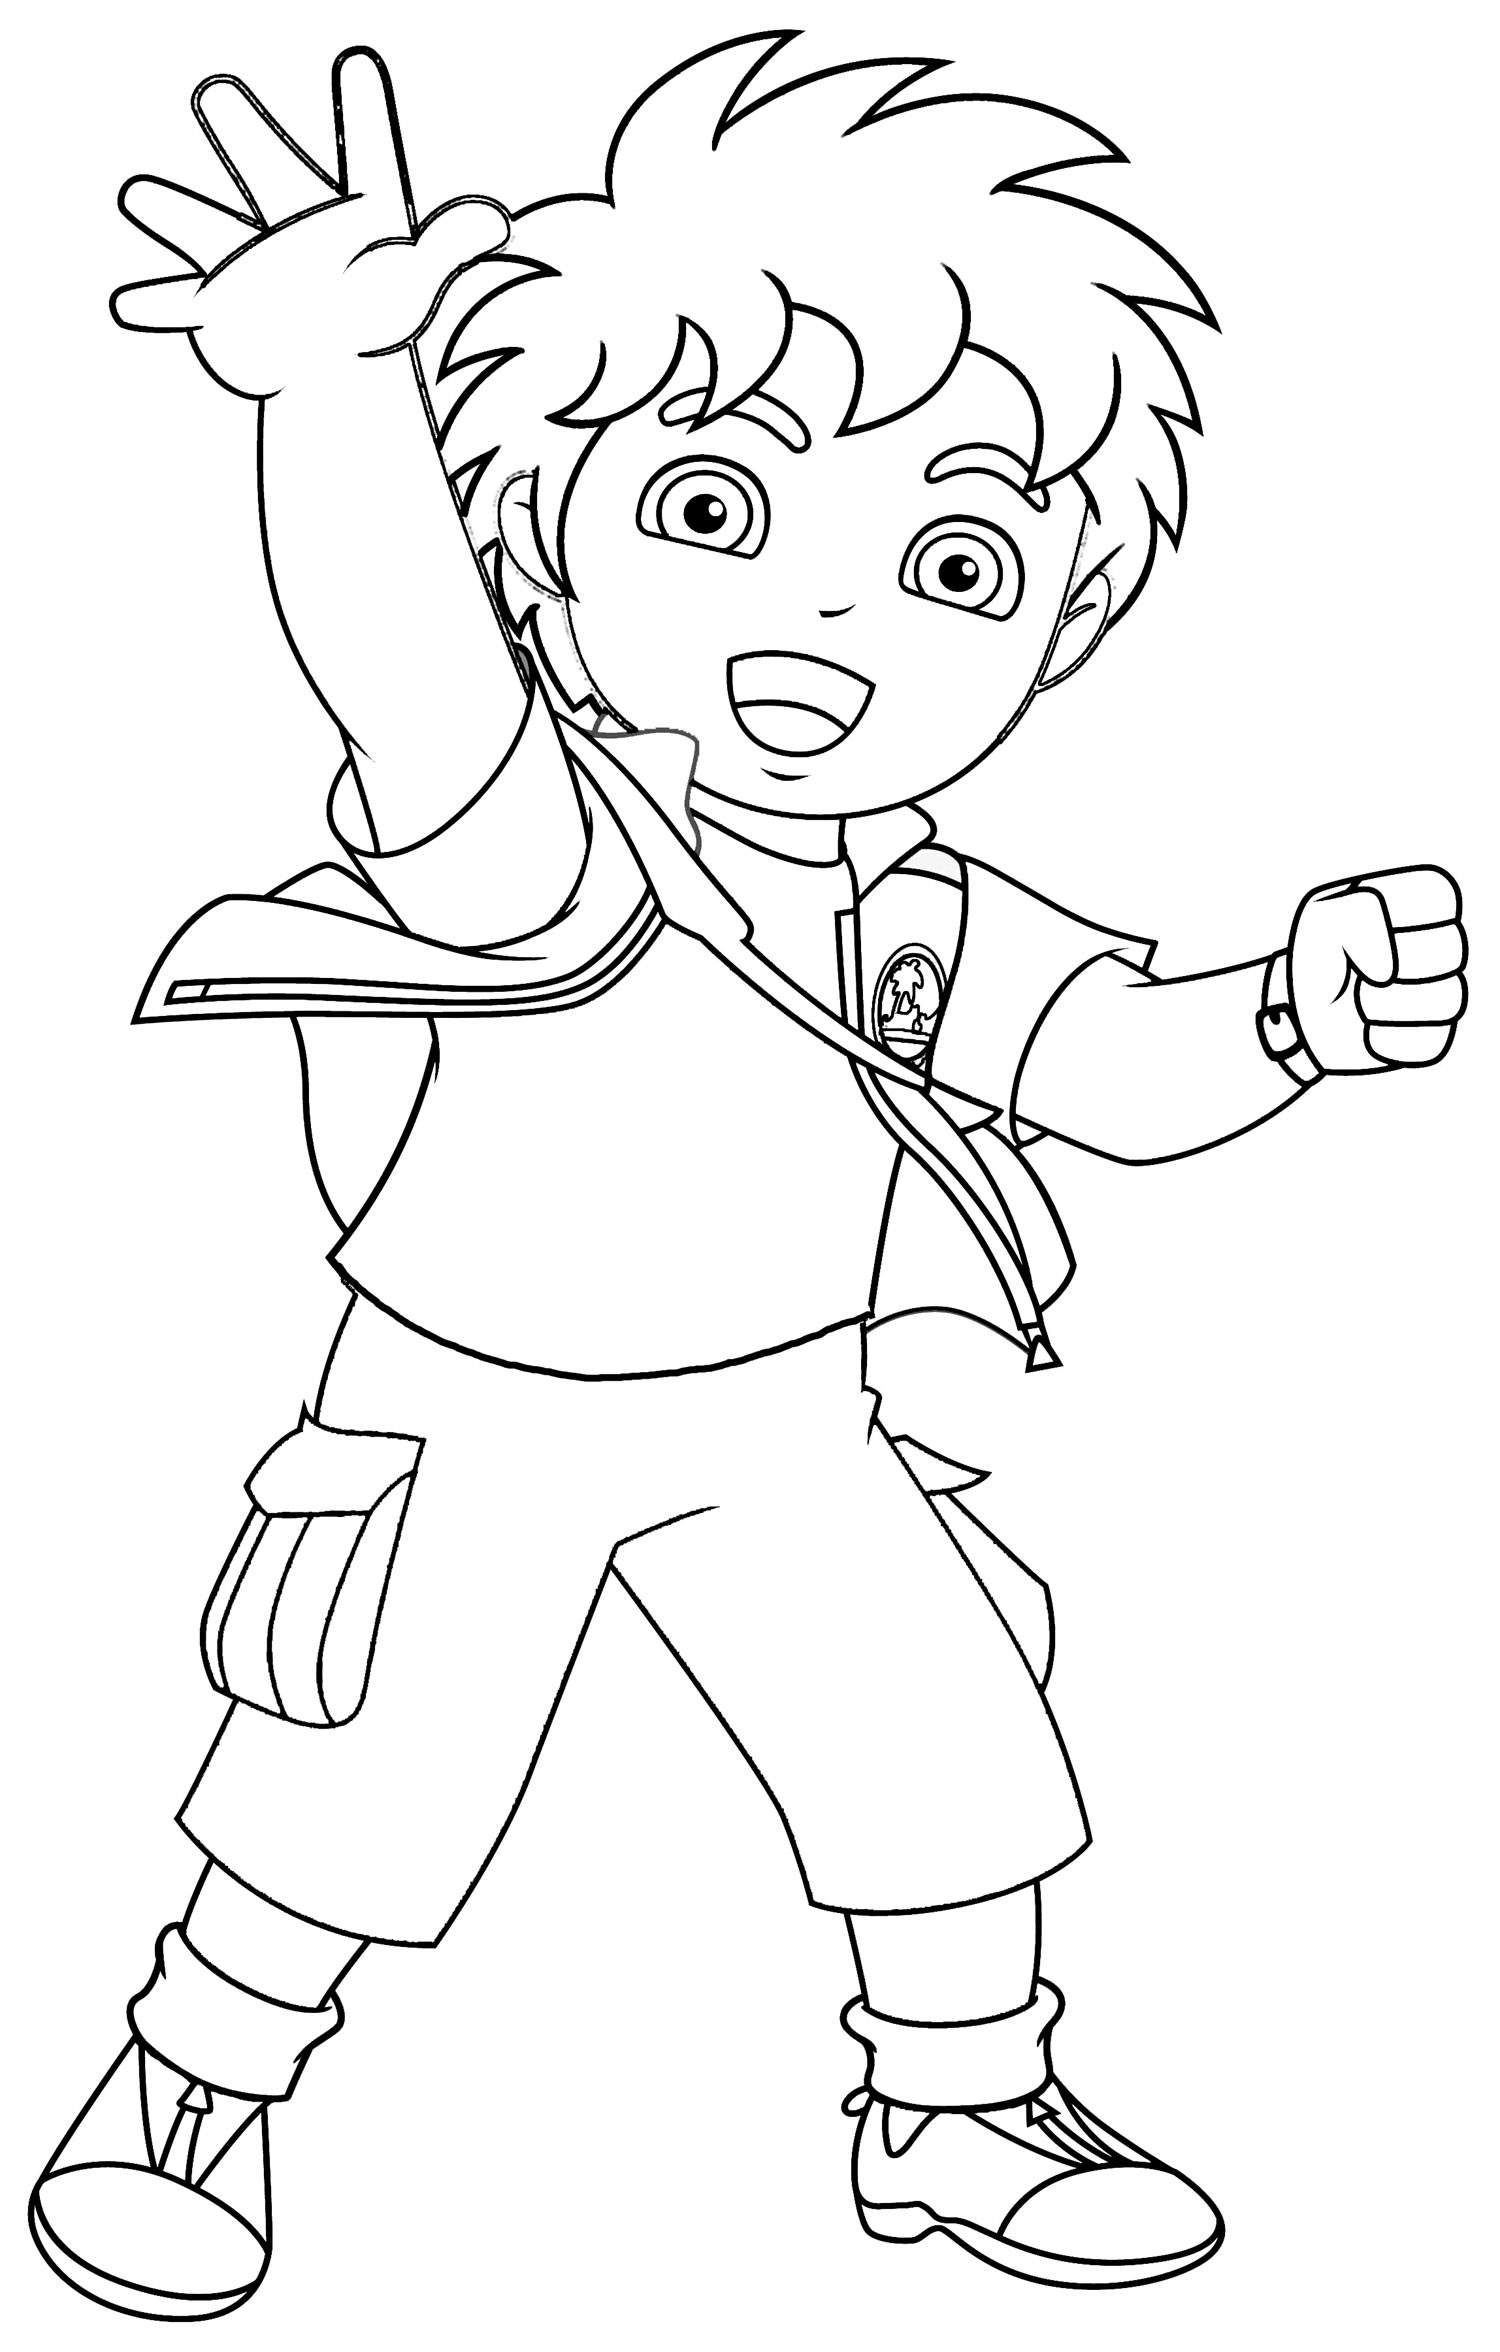 Printable coloring pages nick jr - Download Nick Jr Coloring Pages 8 Print